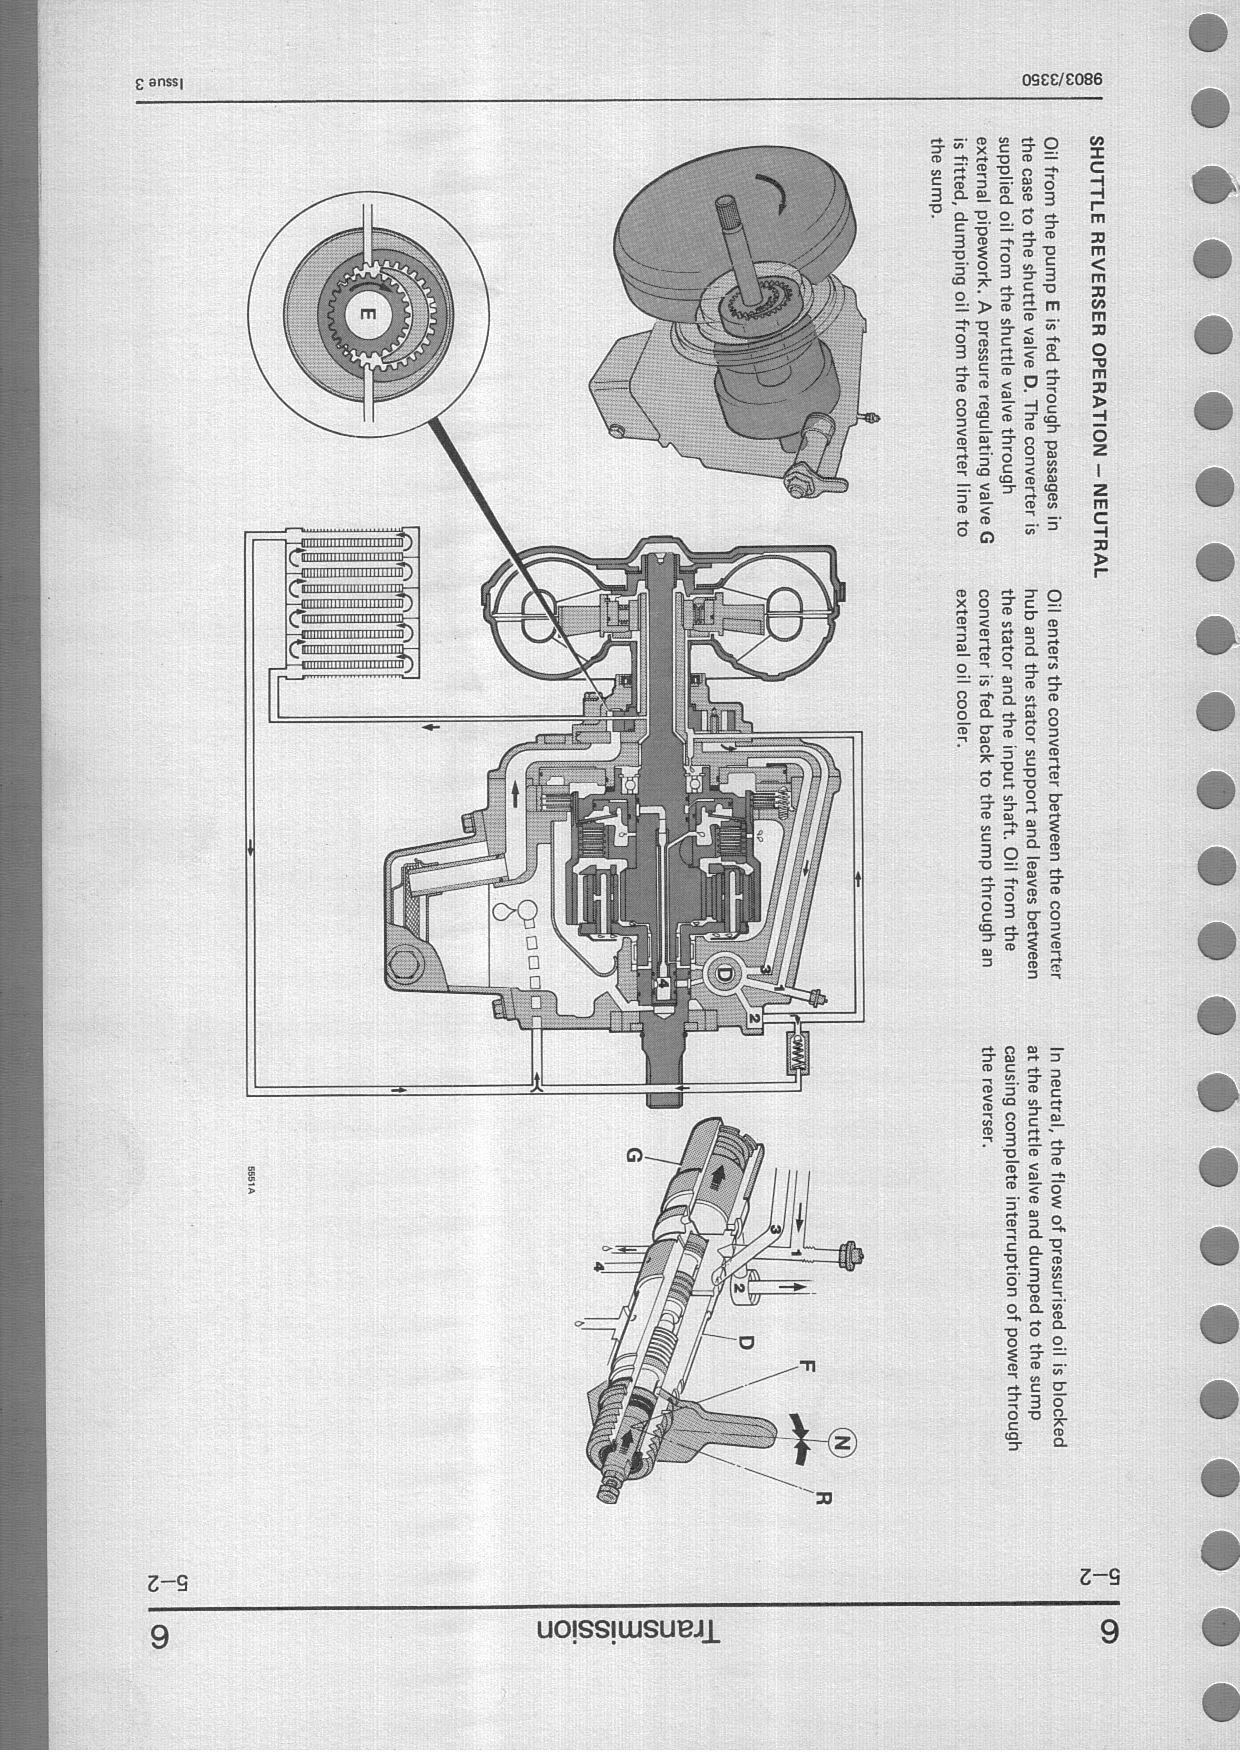 Wiring Diagram For Jcb Forklifts Electrical Diagrams 926 Fork Lift Schematic Transmission Of A Forklift Auto 214 Starter 1987